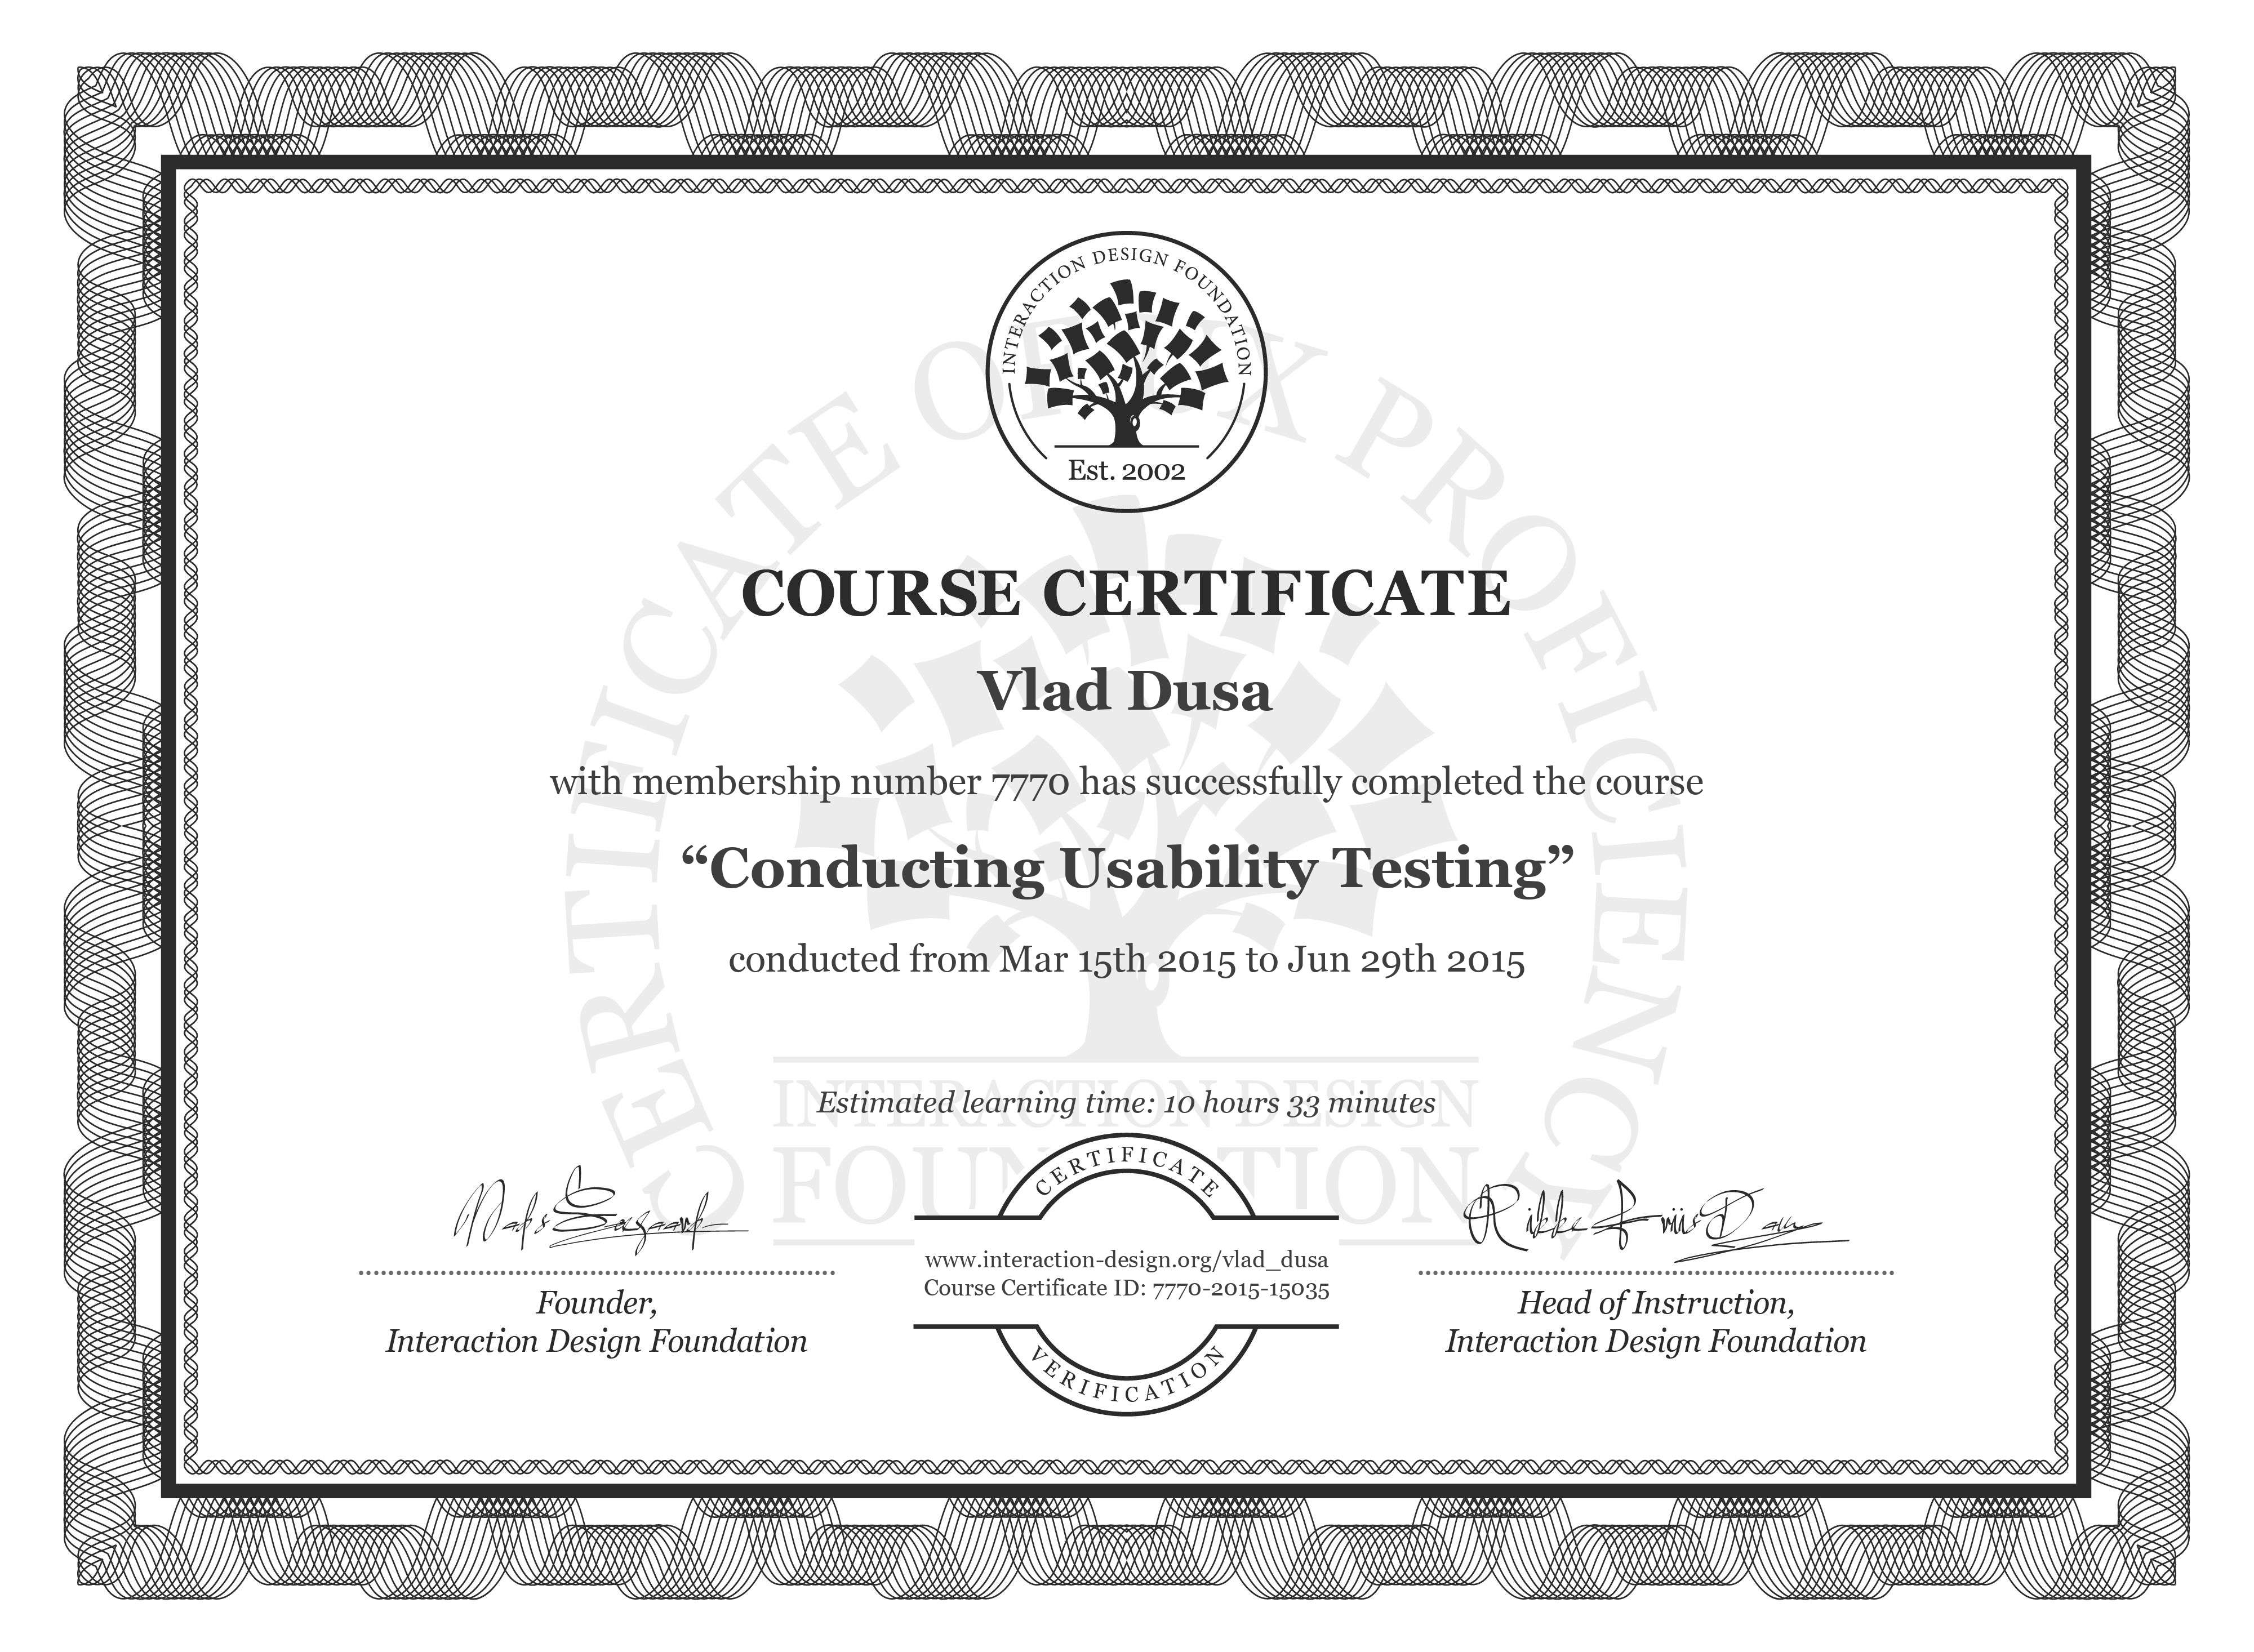 Vlad Dusa: Course Certificate - Conducting Usability Testing